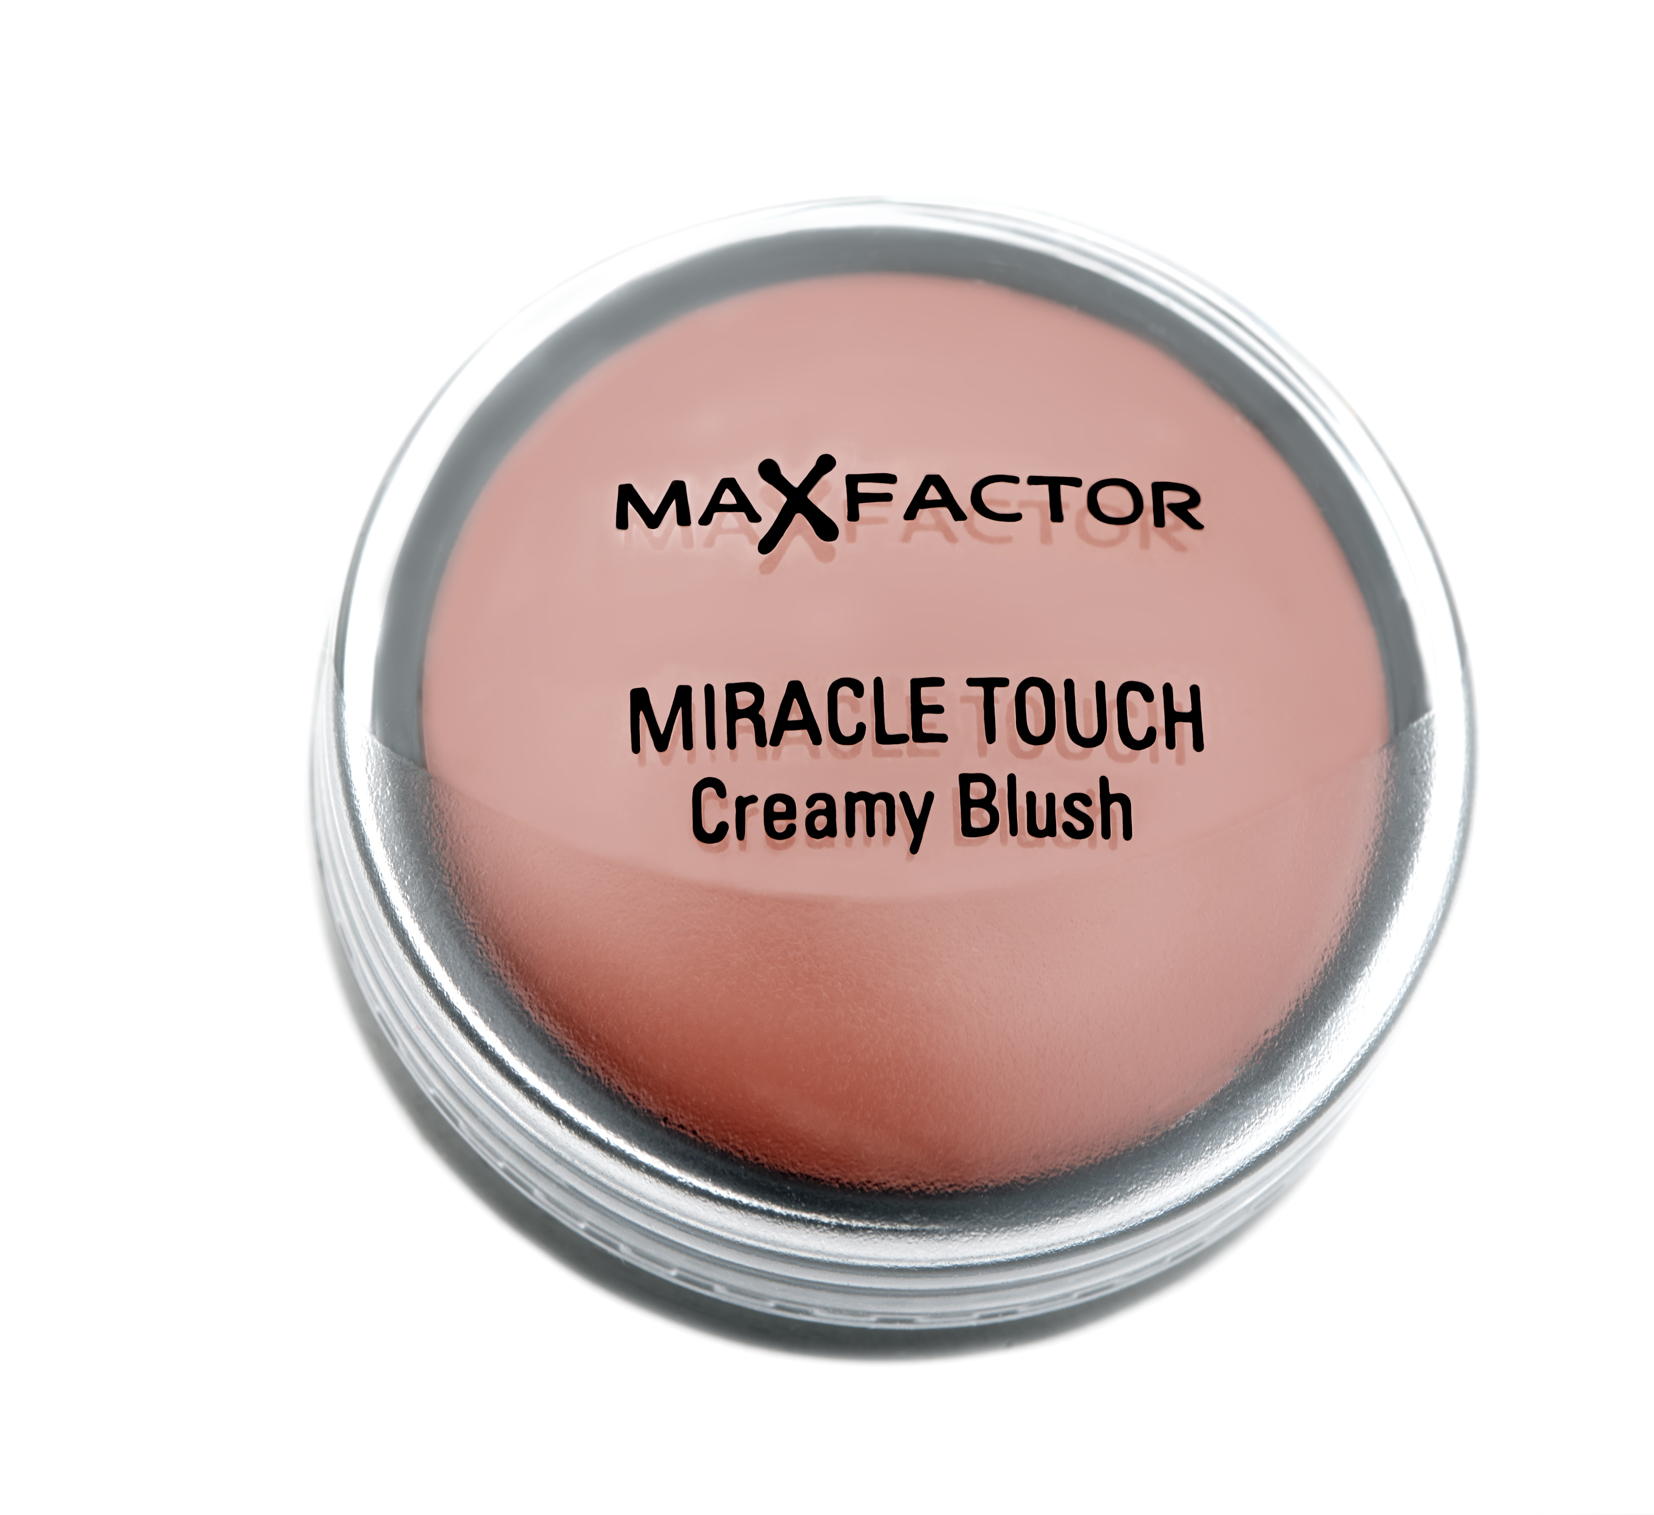 Miracle Touch Creamy Blush, Max Factor